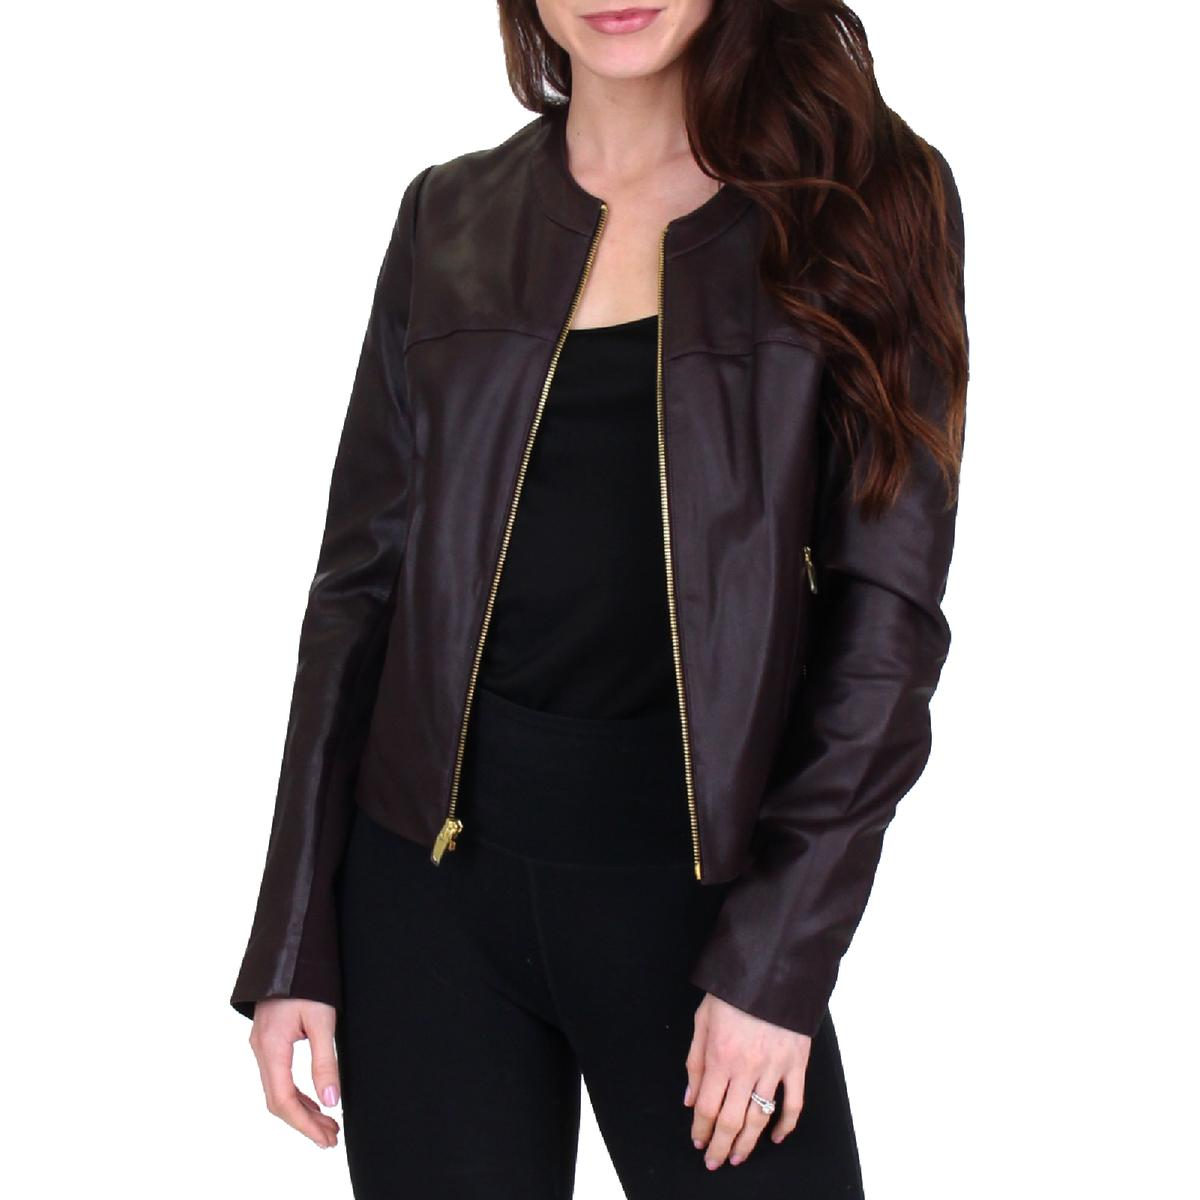 Black M Medium L Large $398 VIA SPIGA Collarless Leather Jacket Knit Back Sand